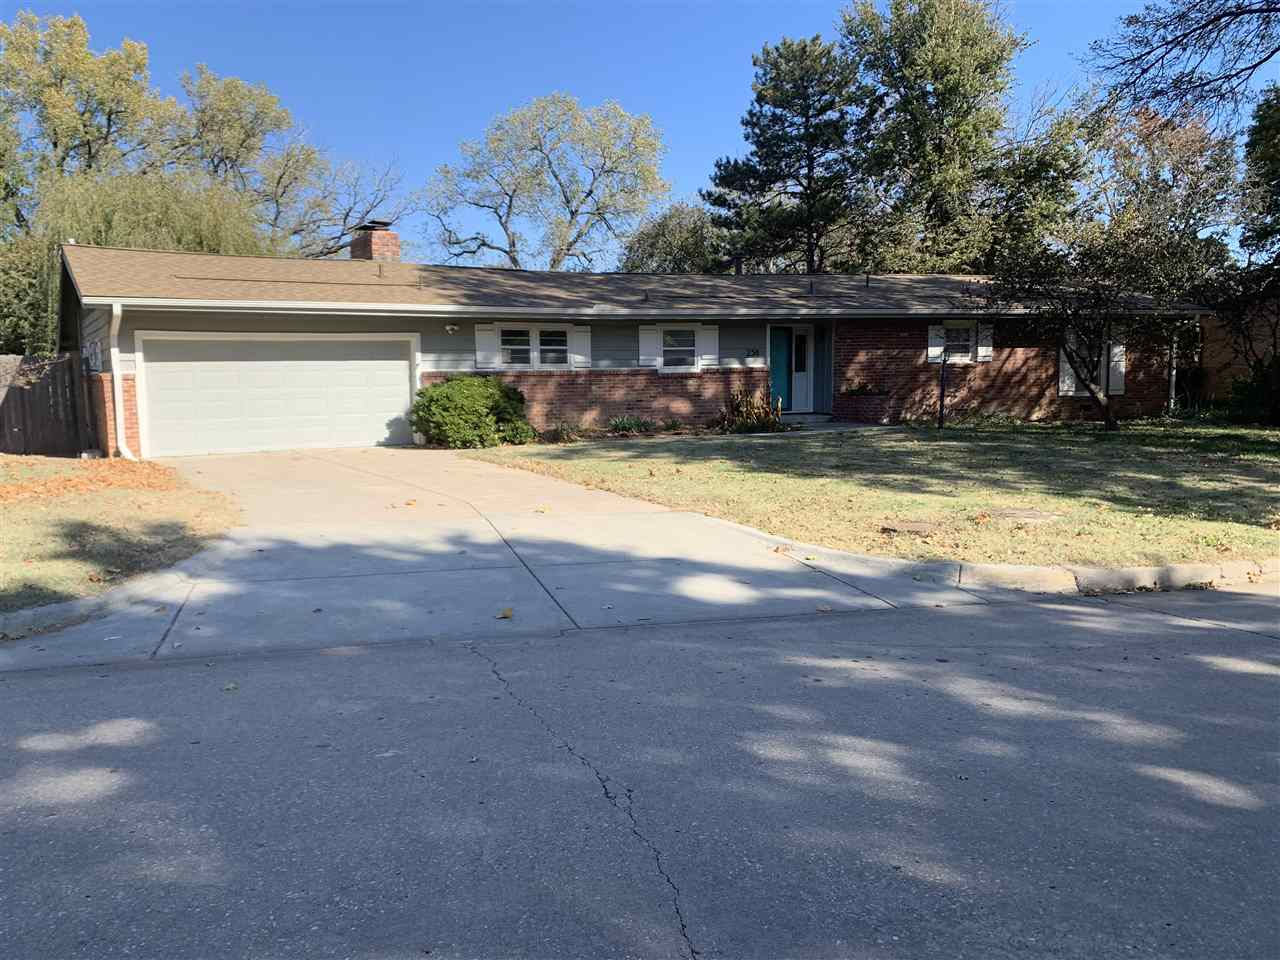 Quaint, cozy mid century ranch home in fantastic quiet sought after Bonnie Brae location, featuring awesome floor plan, main floor laundry, main floor family room, HVAC 6 years old, 50 gallon hot water heater and sewer line in last 5 years, updated plumbing lines into kitchen, new exterior paint in 2017, brand new roof w/innovative venting system, large fenced lot, almost 1/3 acre, basement access is in garage and could easily be separate living quarters for investment purposes for family, friend, etc - features washer/dryer hookups, bathroom, rec room and WBFP - don't miss this!